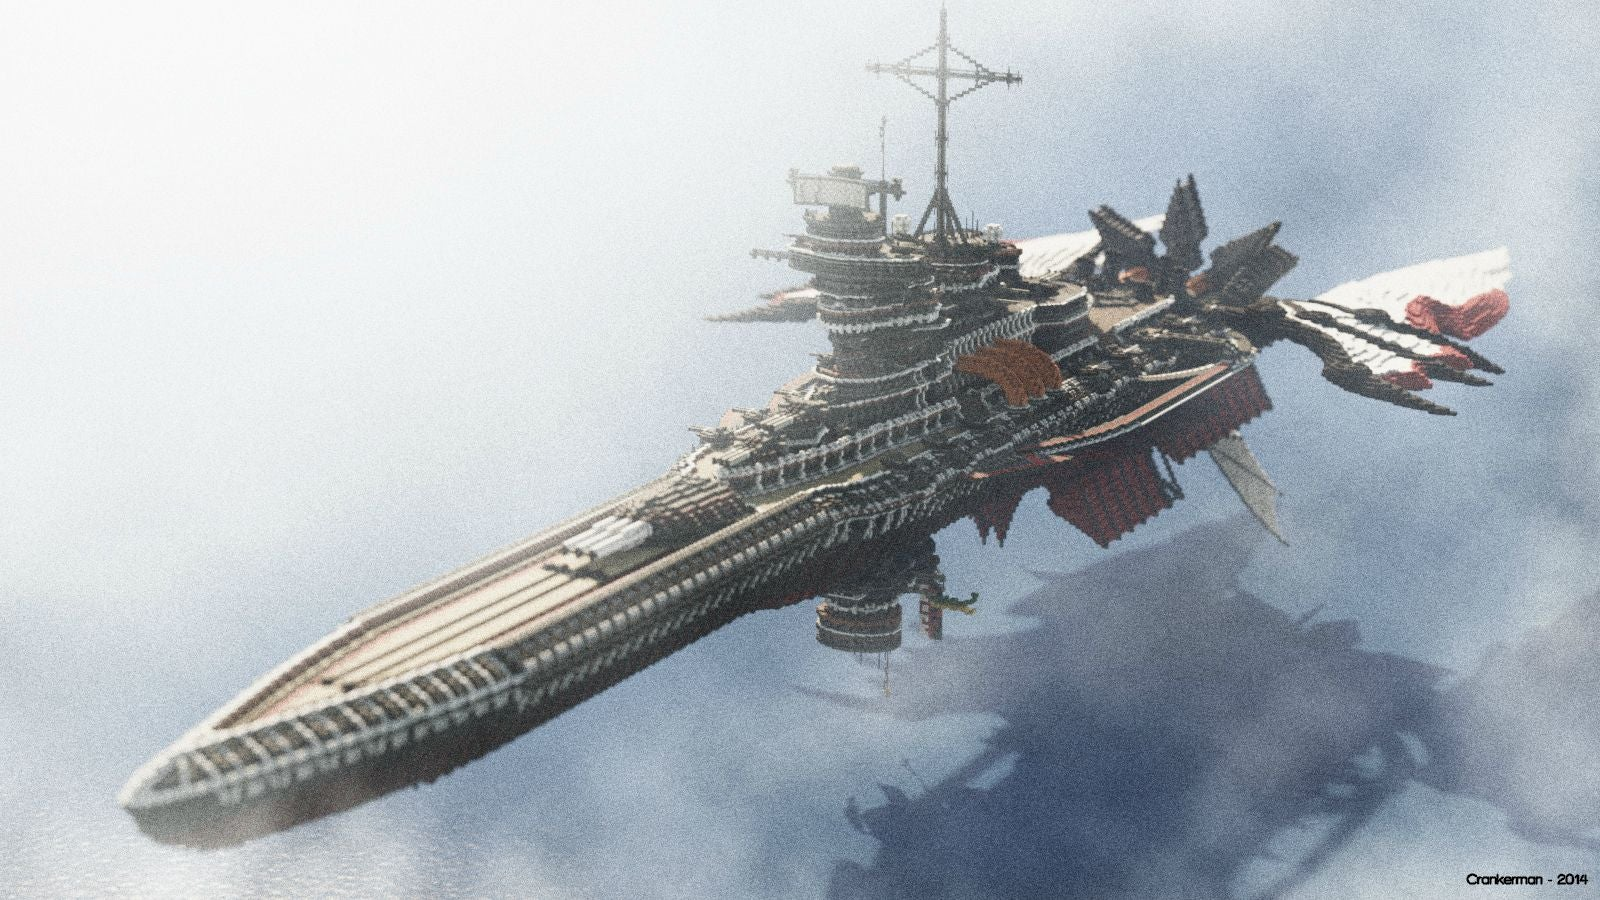 Huge Sci-Fi Battleships Are Made for Exploration